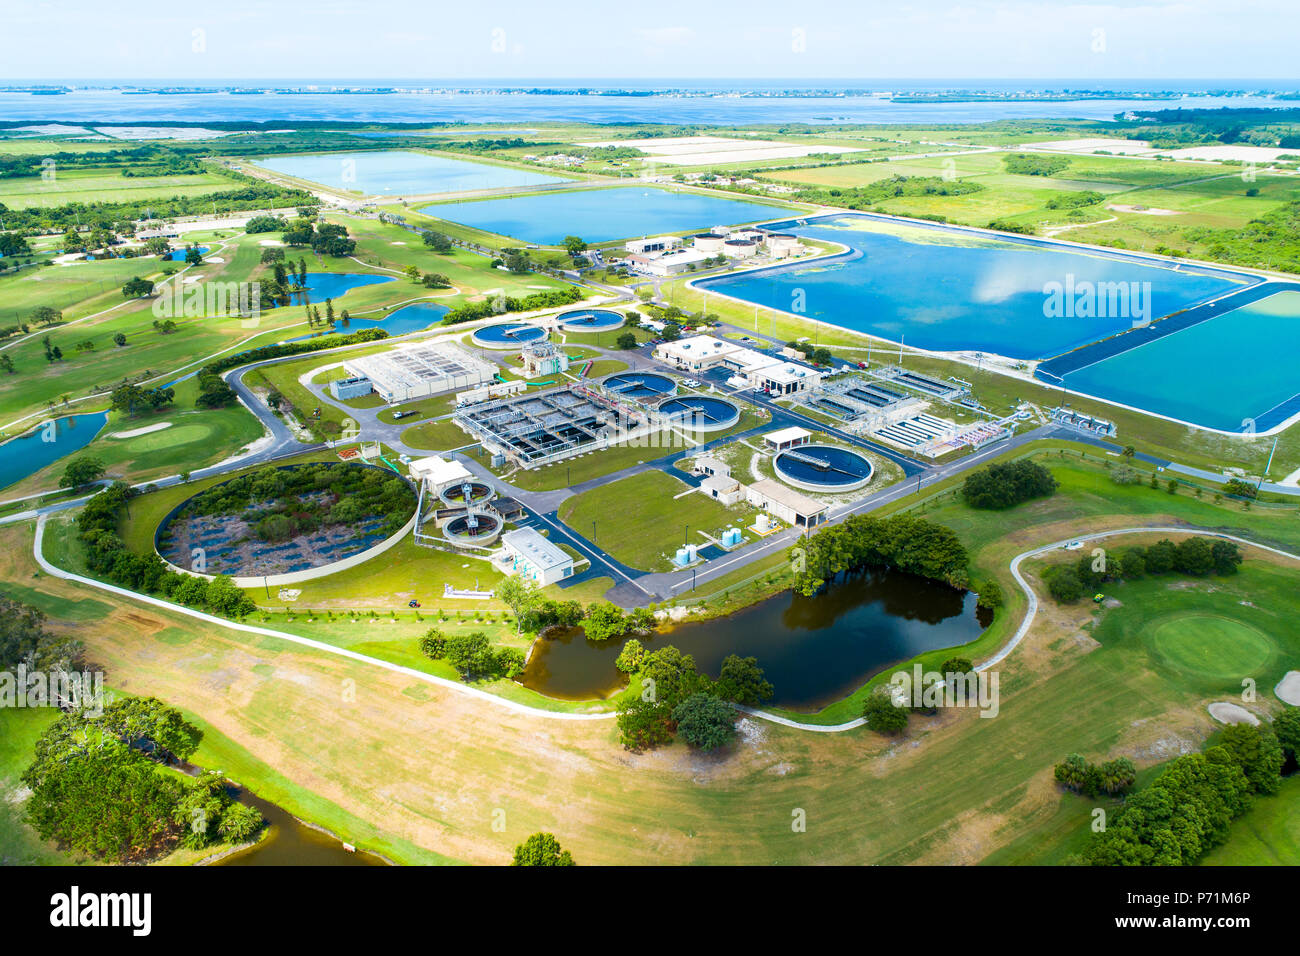 Modern lagoon waste water style sewage treatment plant in Bradenton Florida fl where normal household sewage is treated and filtered and recycled for  - Stock Image